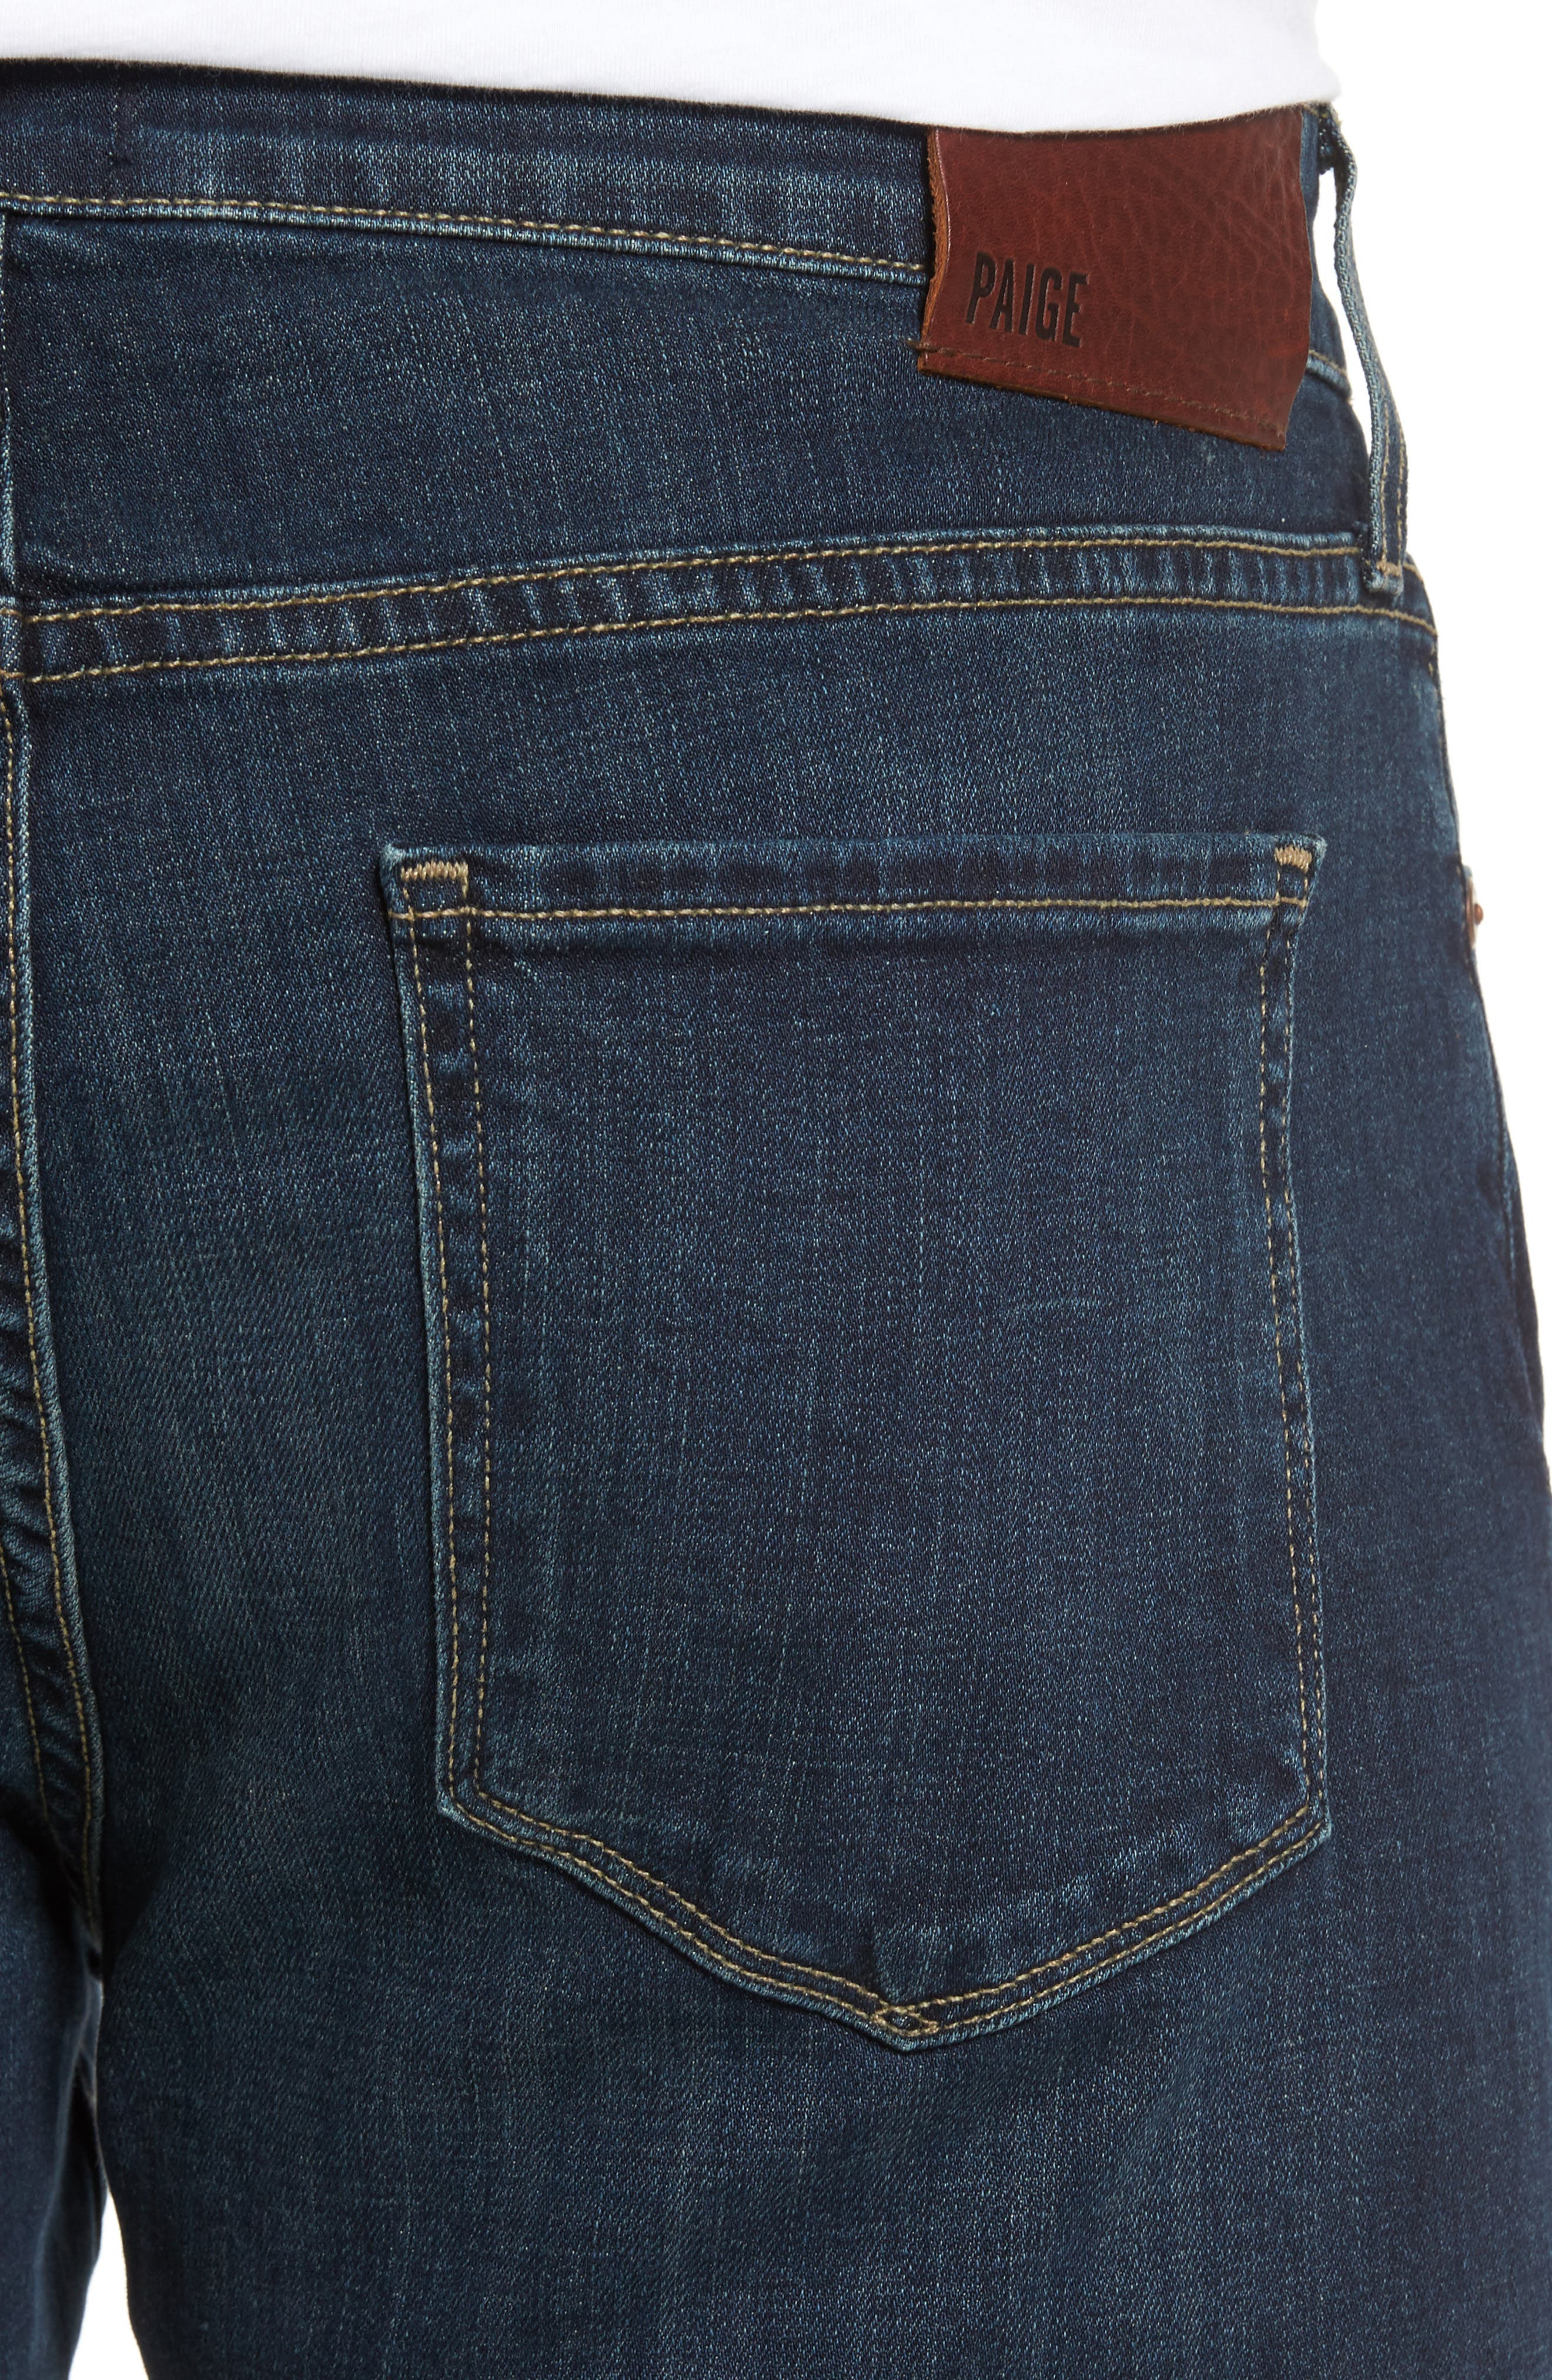 Alternate Image 4  - PAIGE Doheny Relaxed Fit Jeans (Knowle)